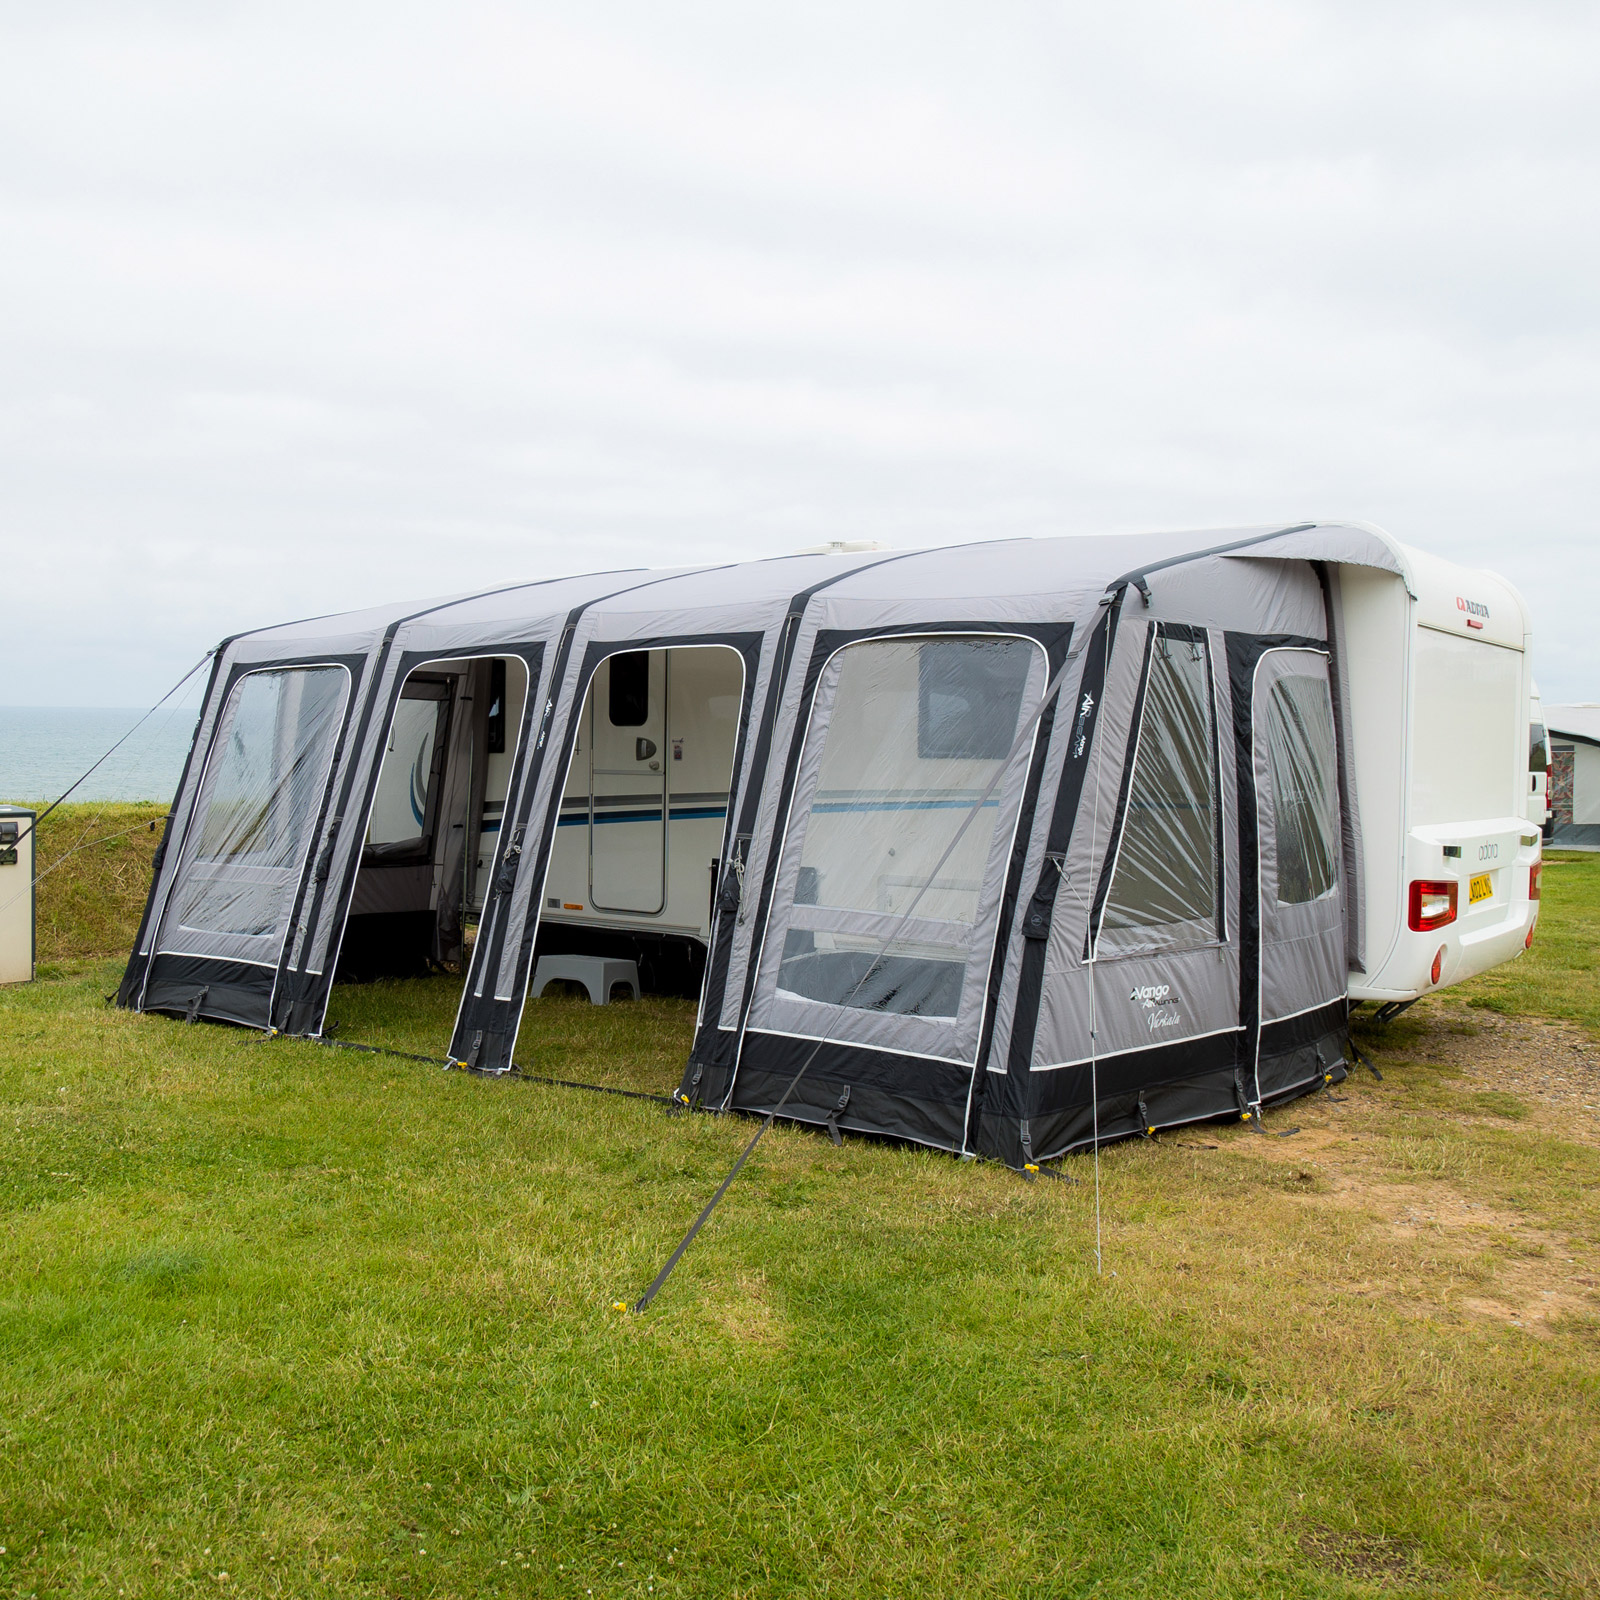 vorzelt vango air awning varkala ii 520 wohnwagen caravan. Black Bedroom Furniture Sets. Home Design Ideas